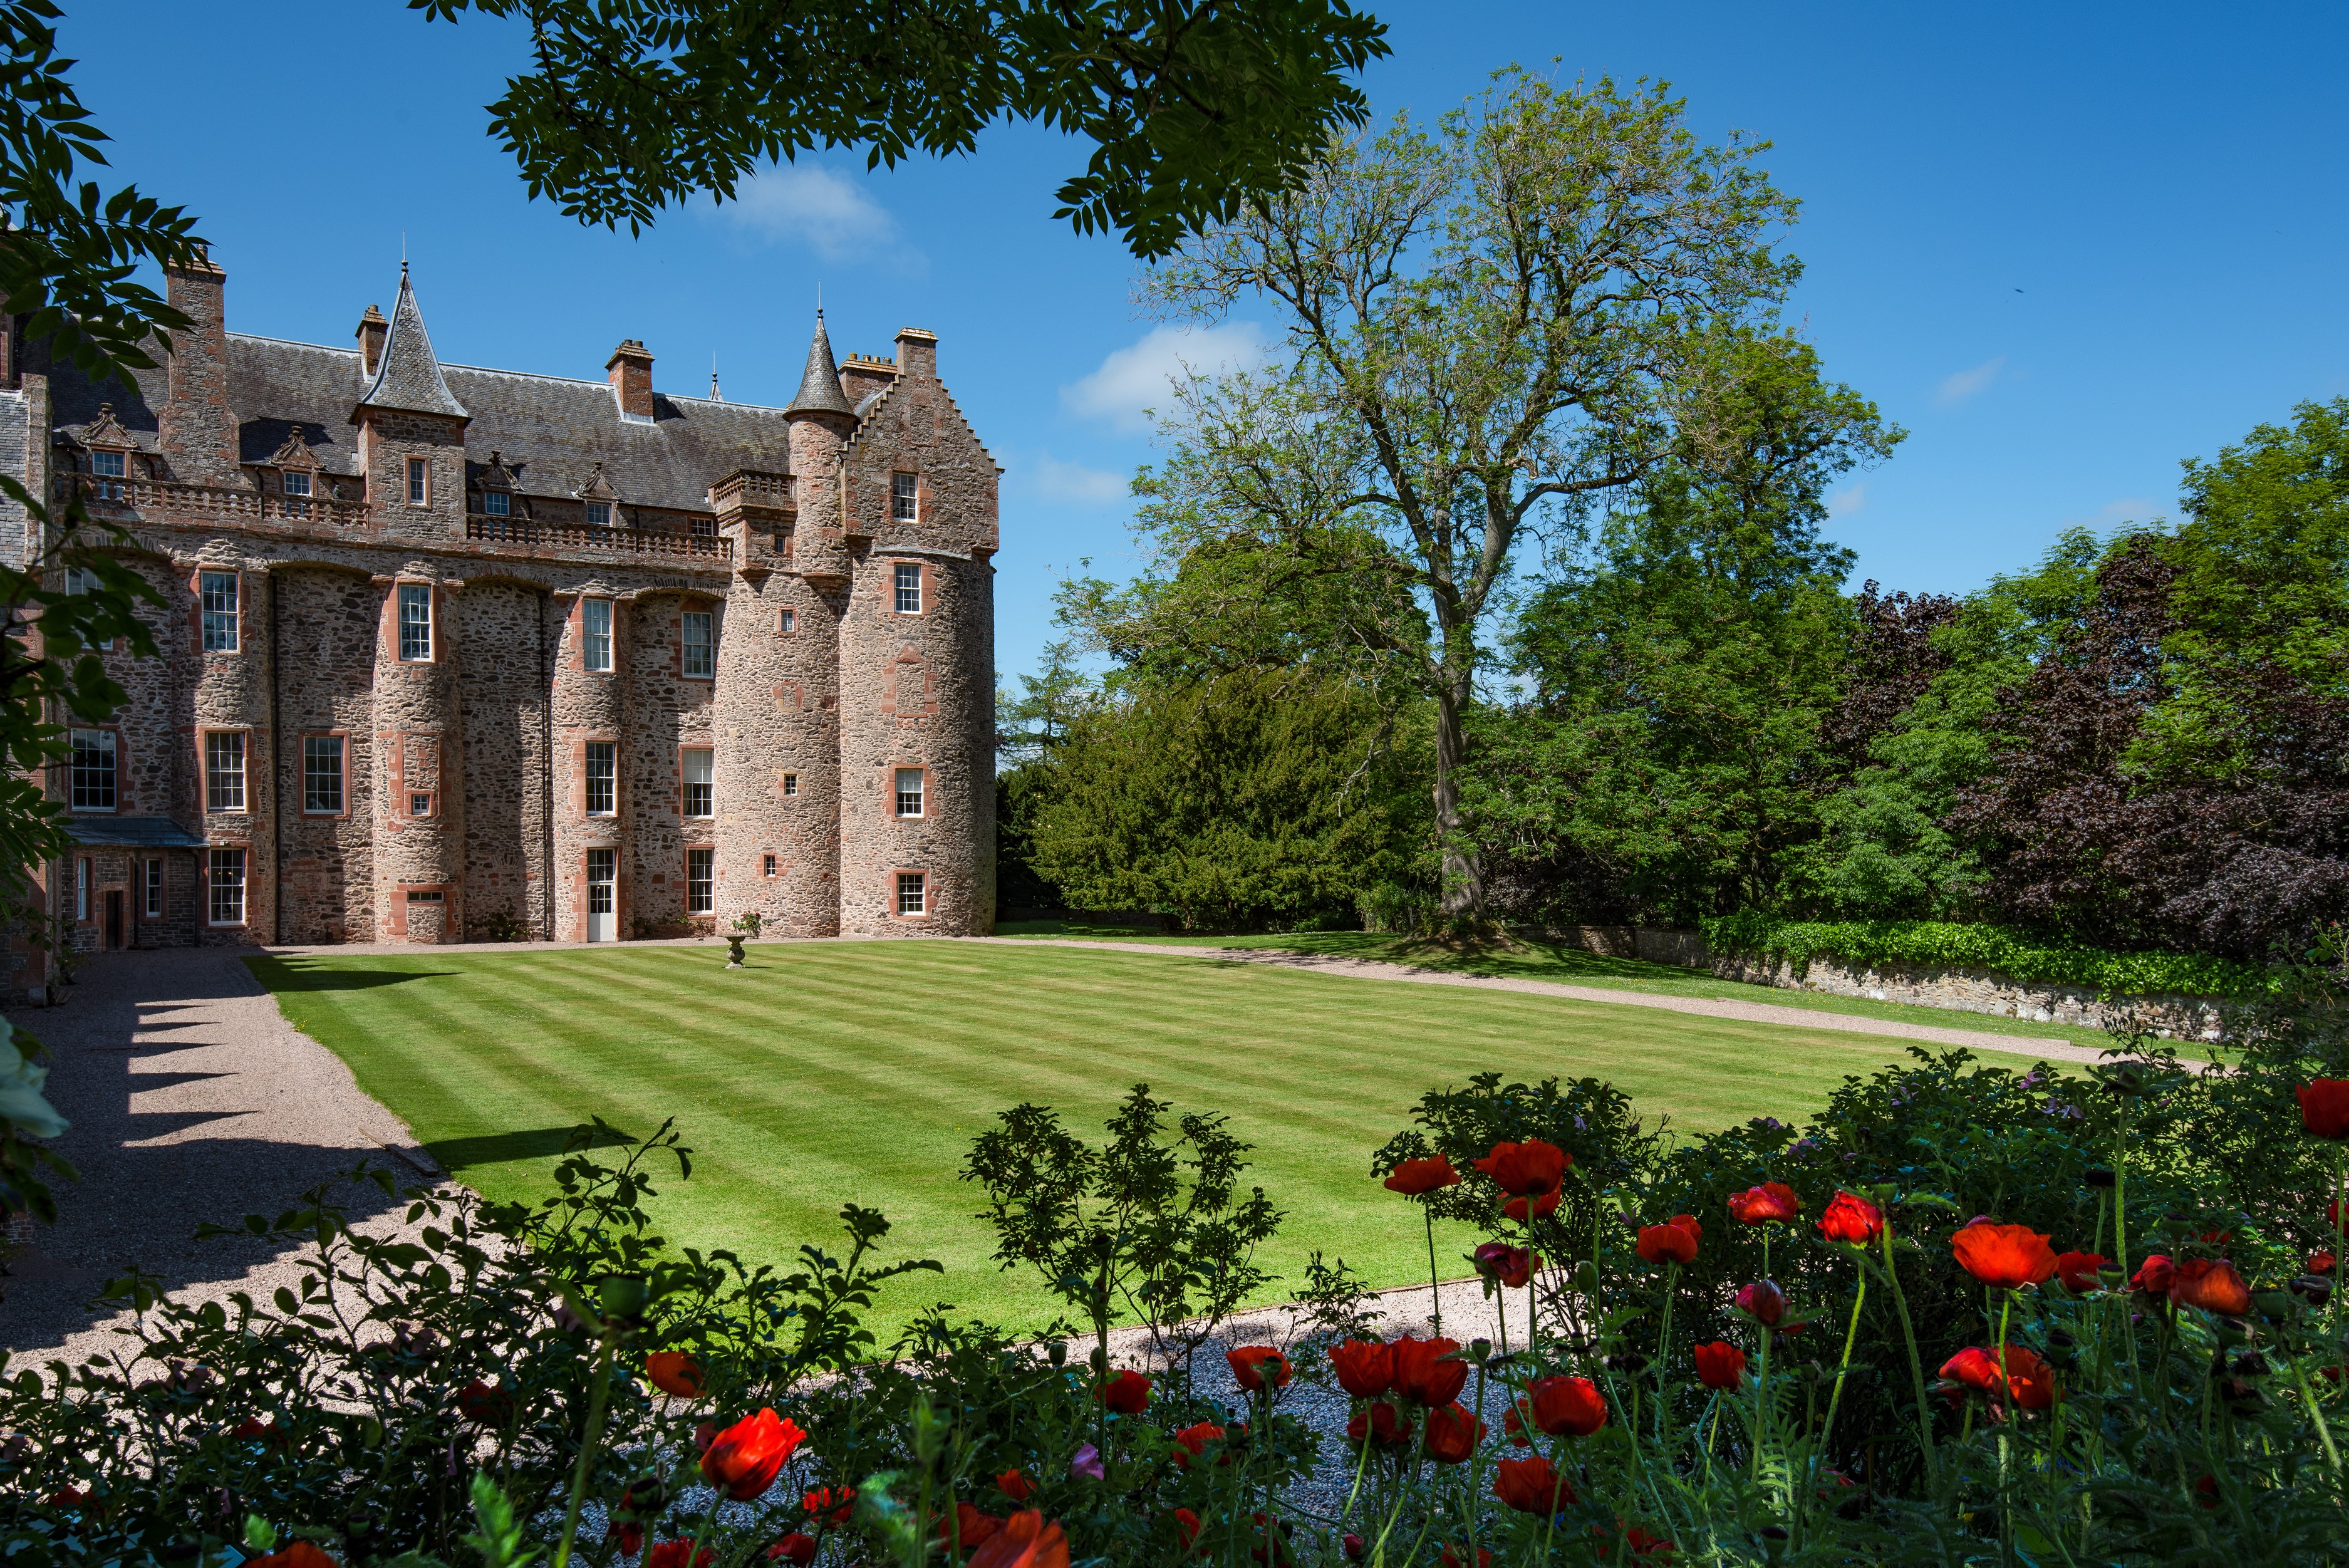 The Maitland, Thirlestane Castle